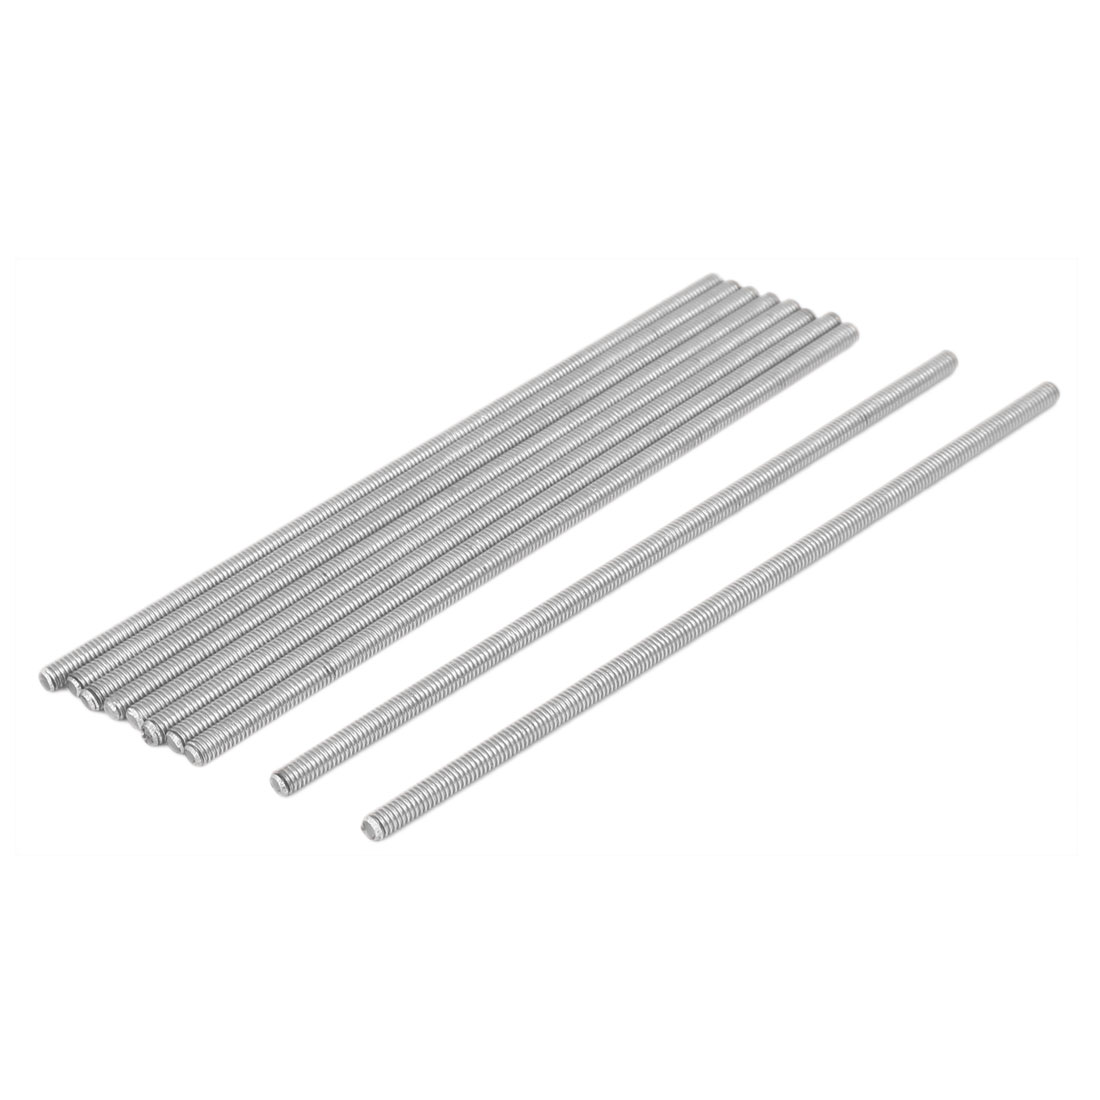 M4 x 130mm 0.7mm Pitch 304 Stainless Steel Fully Threaded Rod Bar Studs 10 Pcs